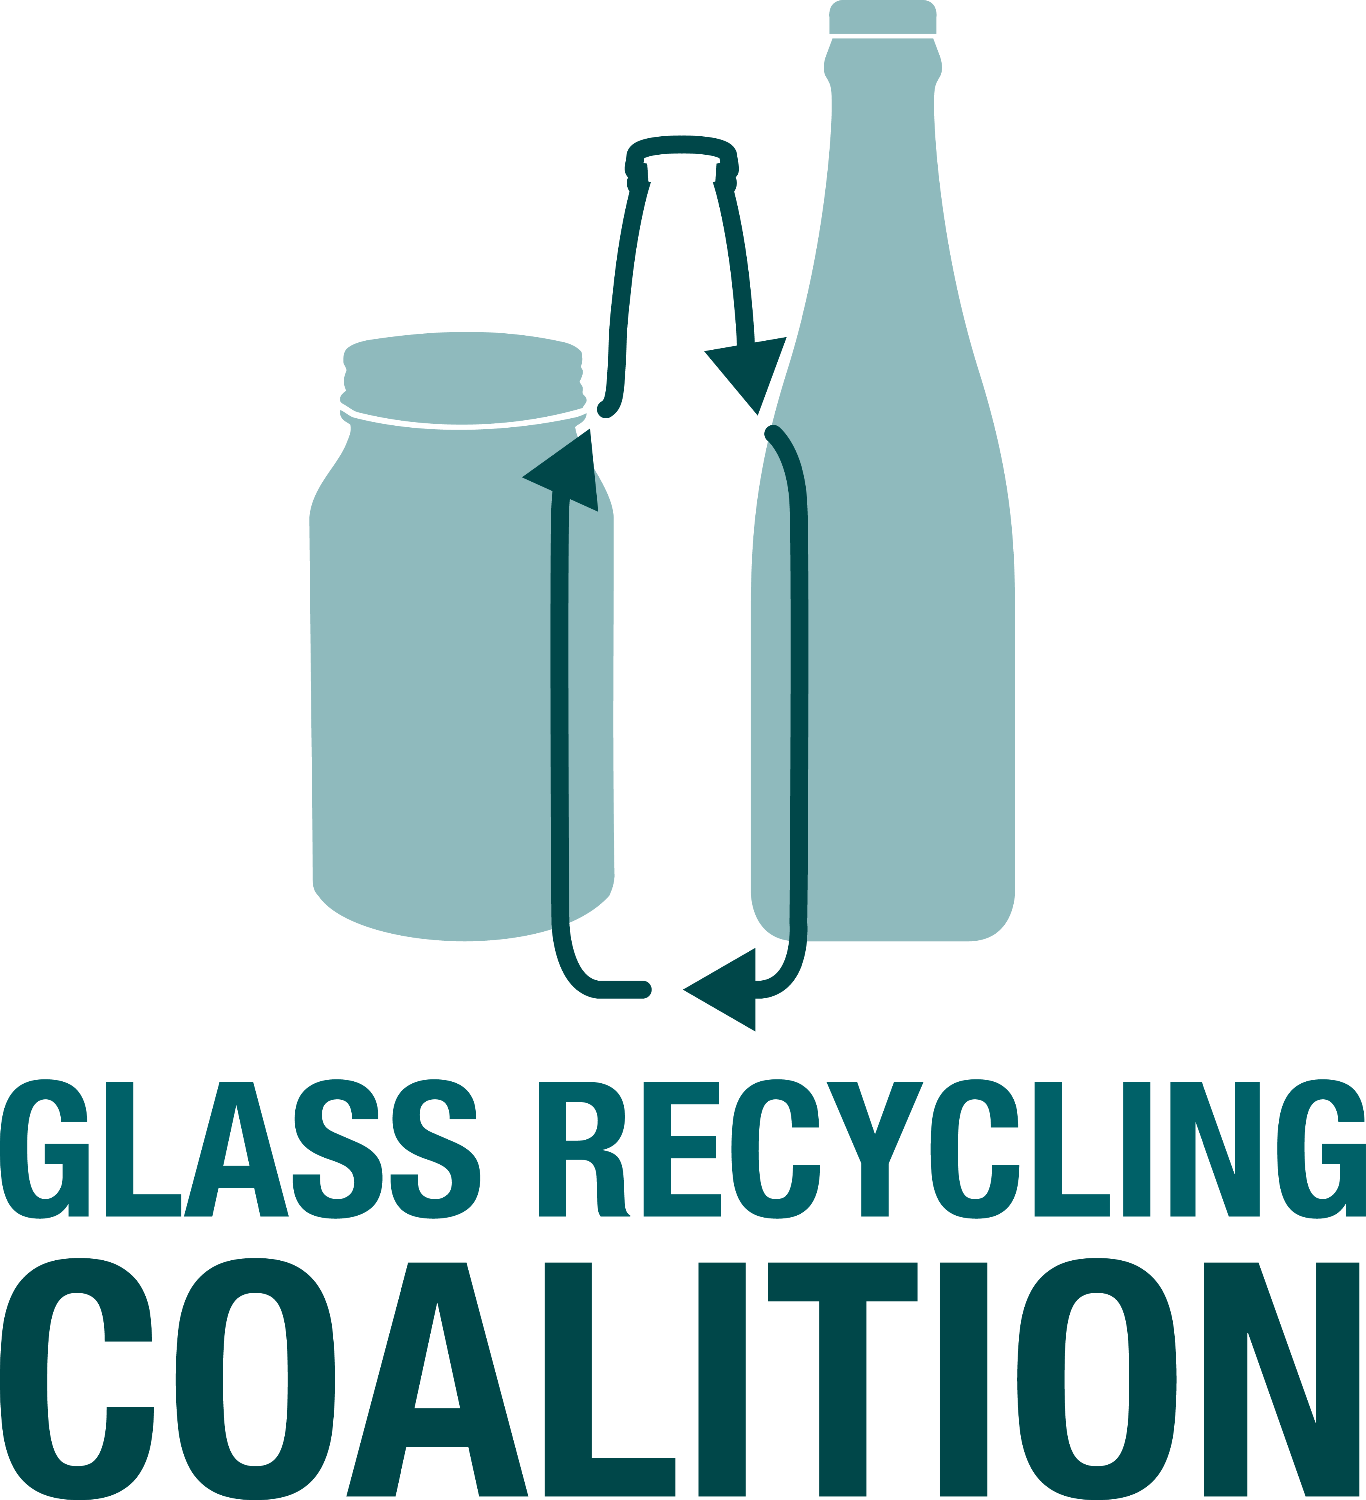 Clipart glasses waste. Glassrecycling